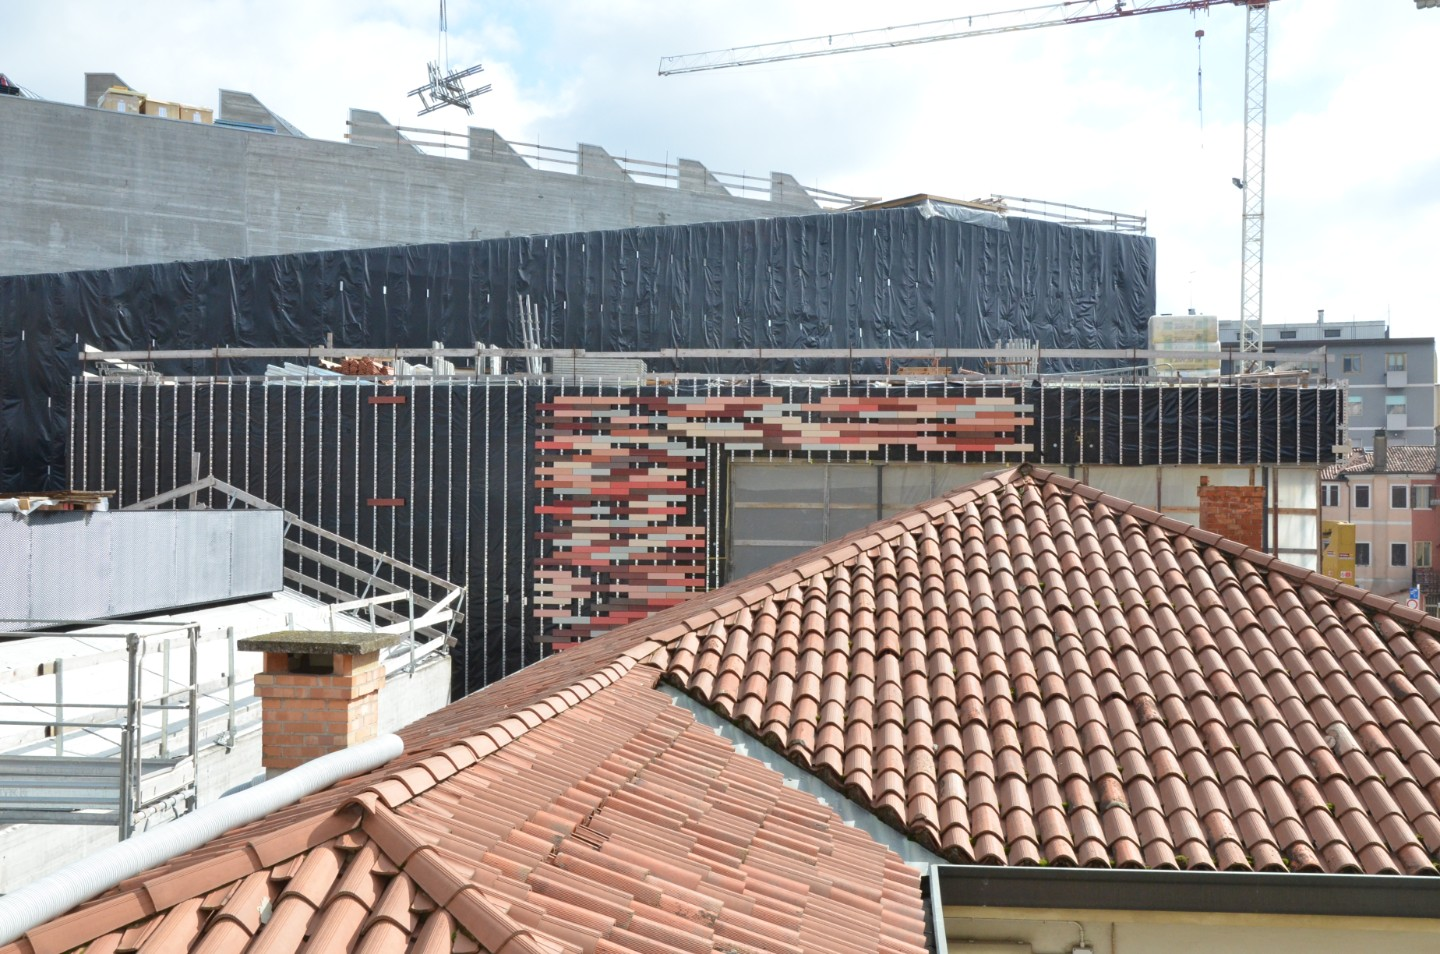 Facciate ventilate con tavelle in terracotta